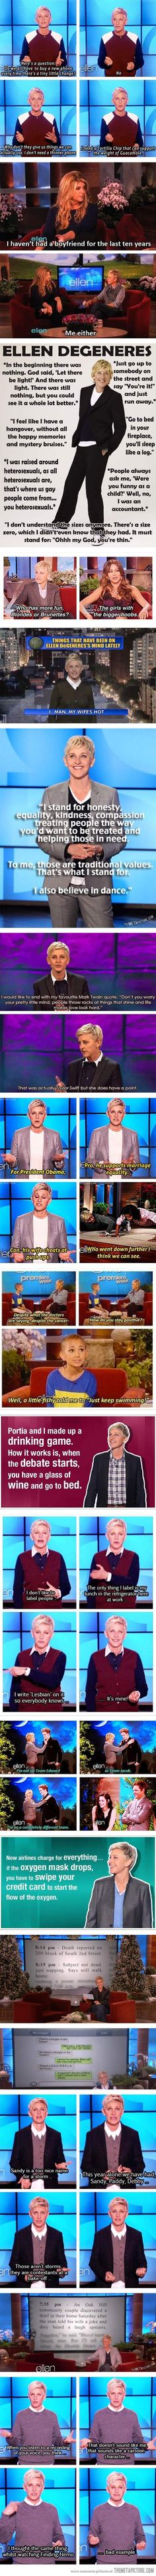 I love Ellen! I honestly think she is one of the funniest people on the planet!